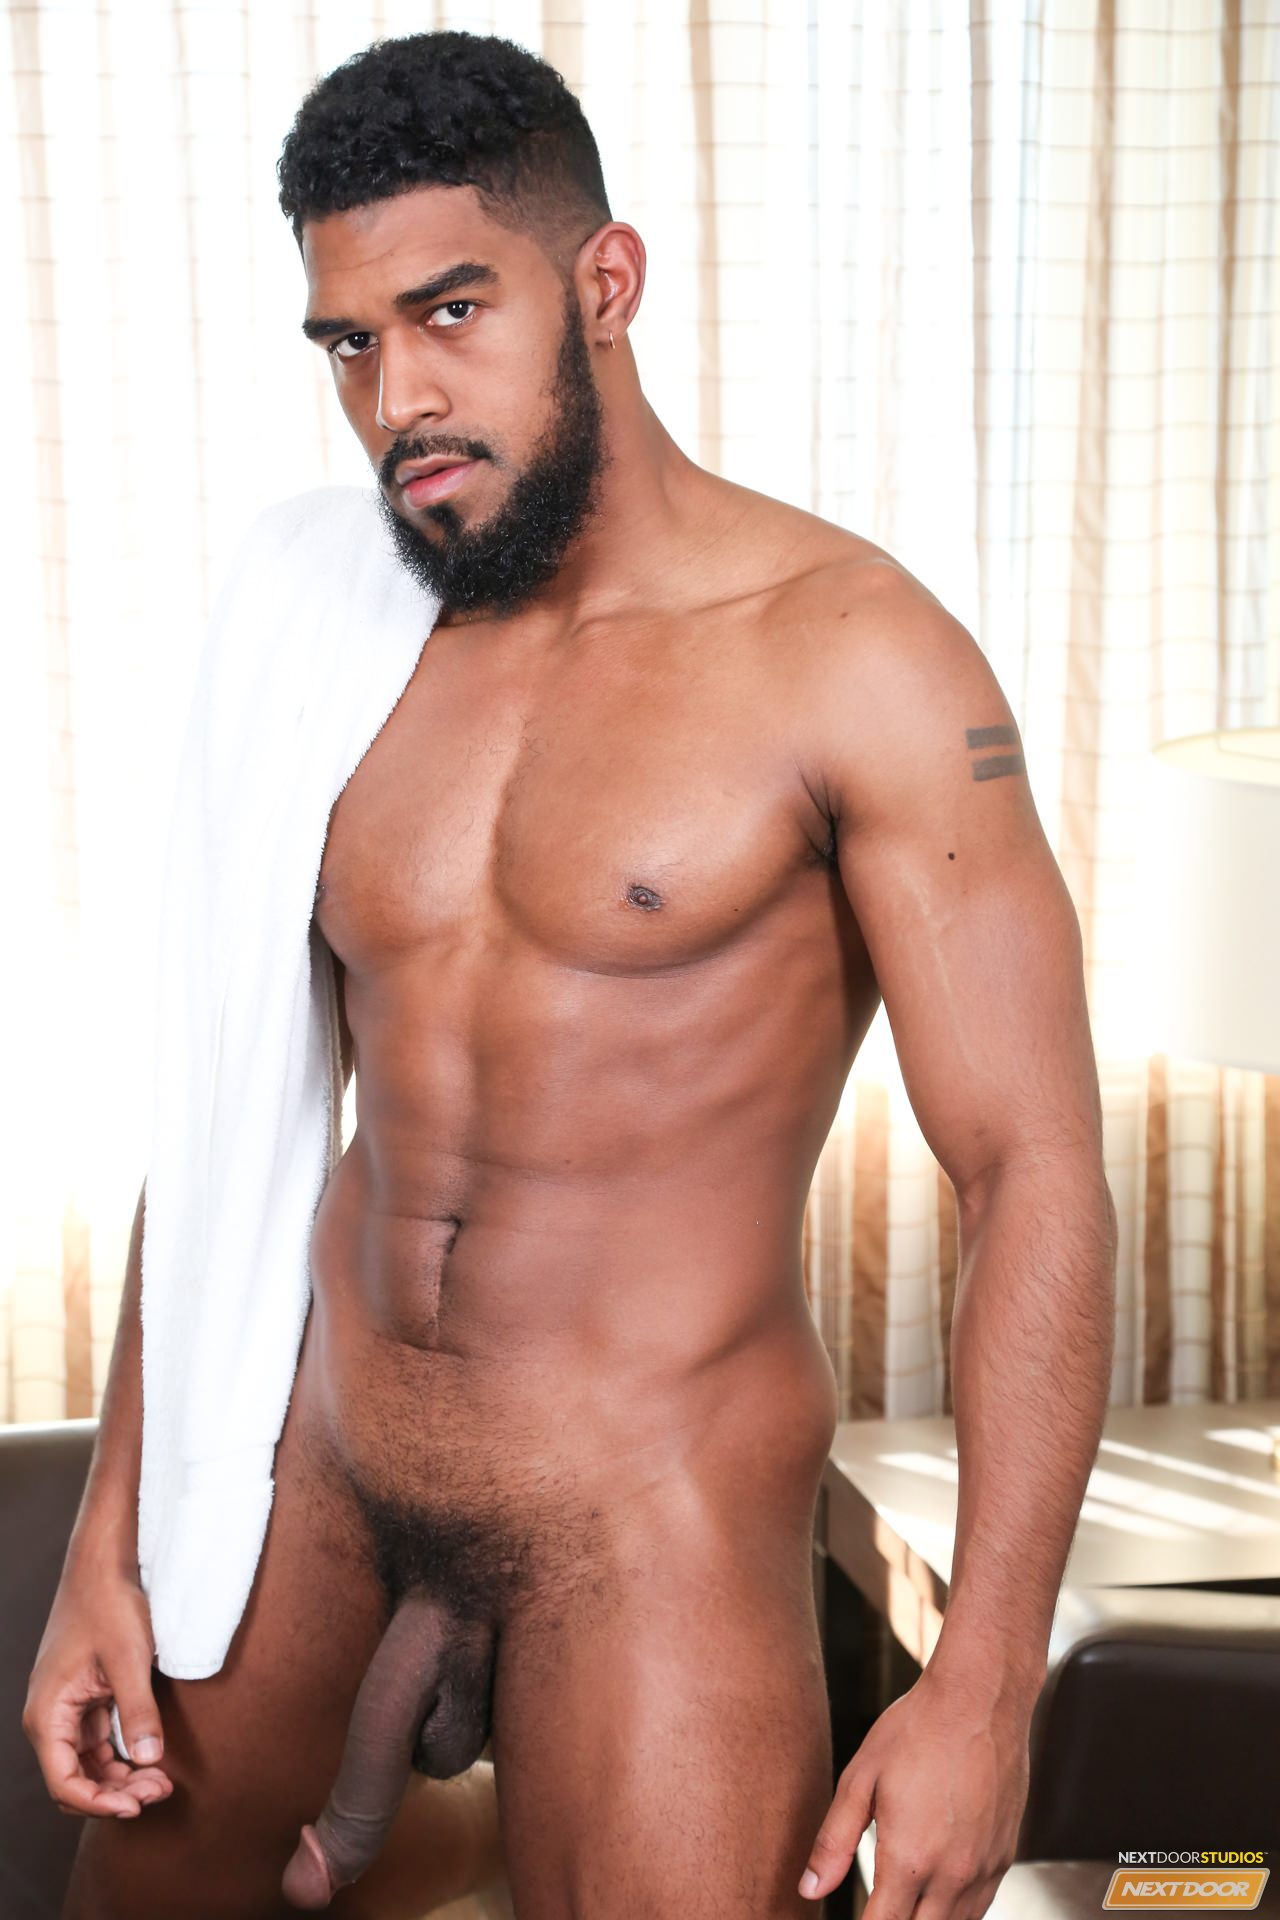 xxxl black gay tumblr